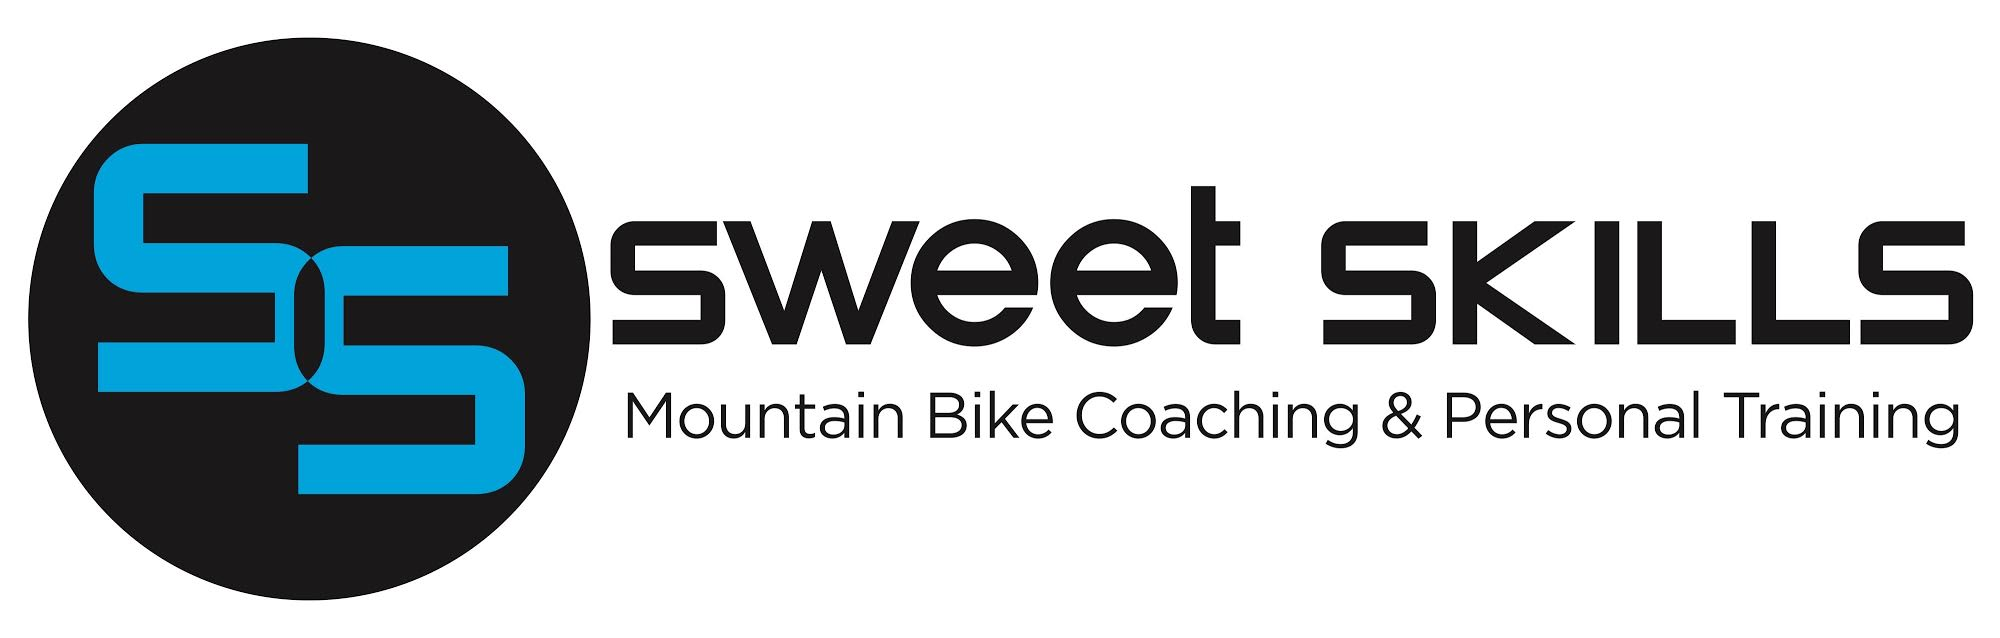 Get your bike skills sweetened with women's small-group mountain bike coaching and backcountry adventures based out of Pemberton. -